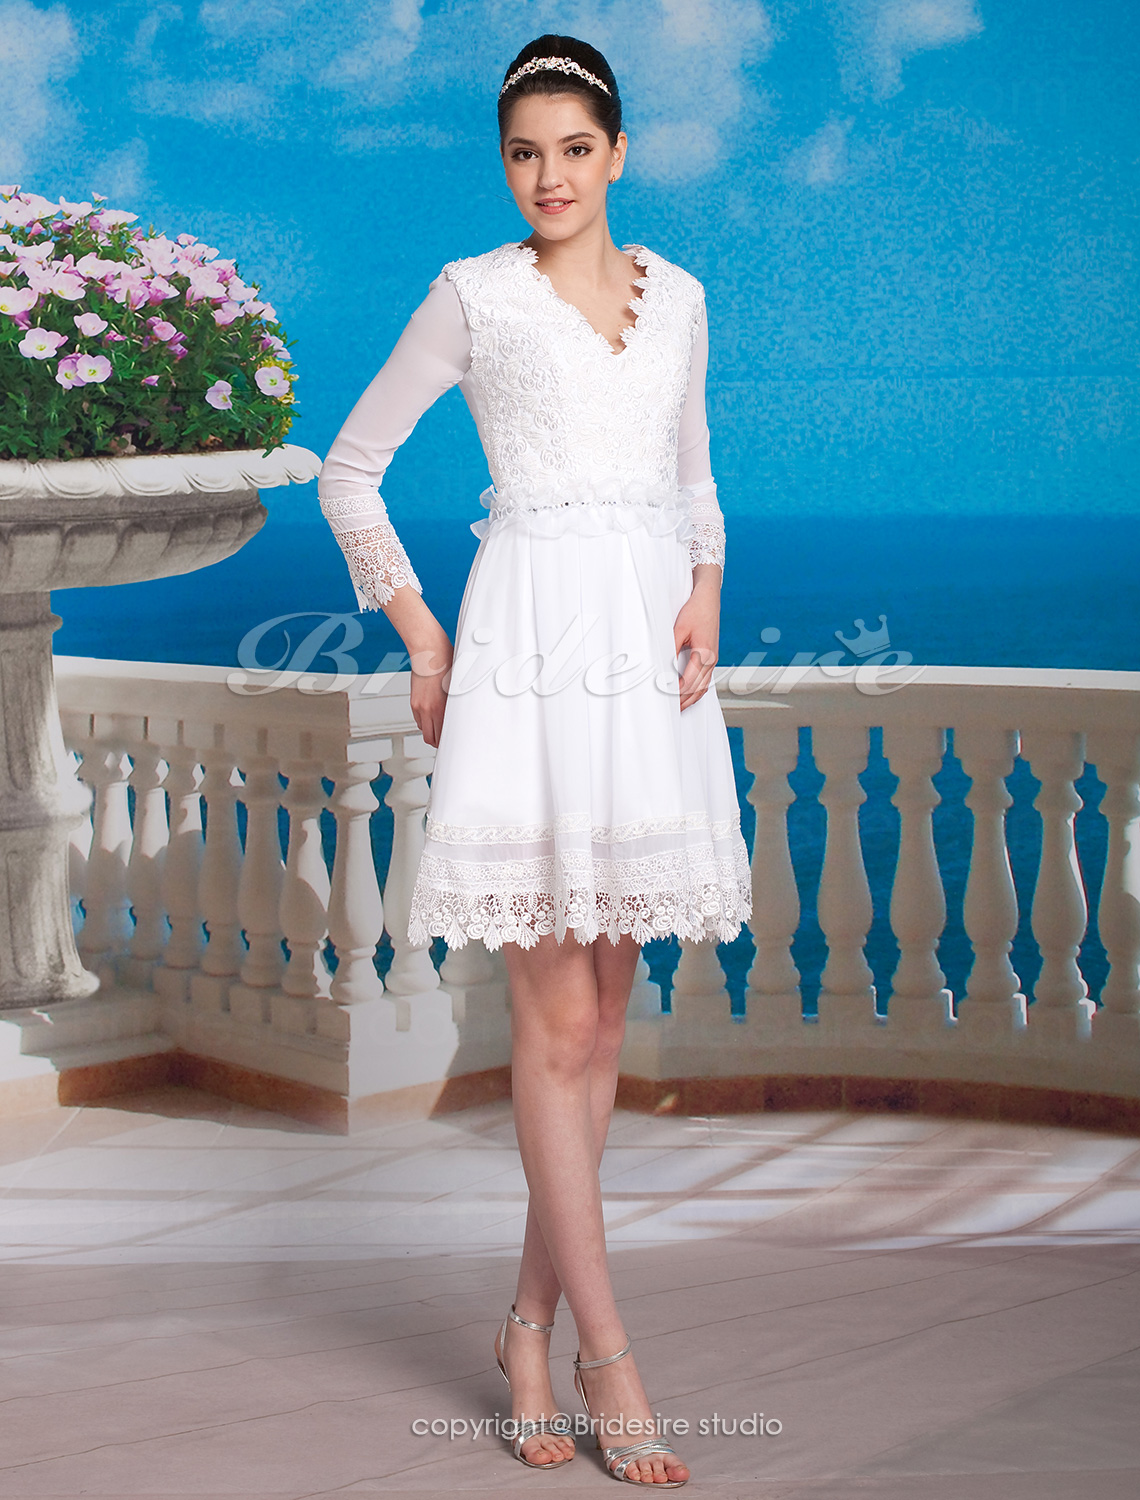 A-line Chiffon Lace Knee-length V-neck Wedding Dress